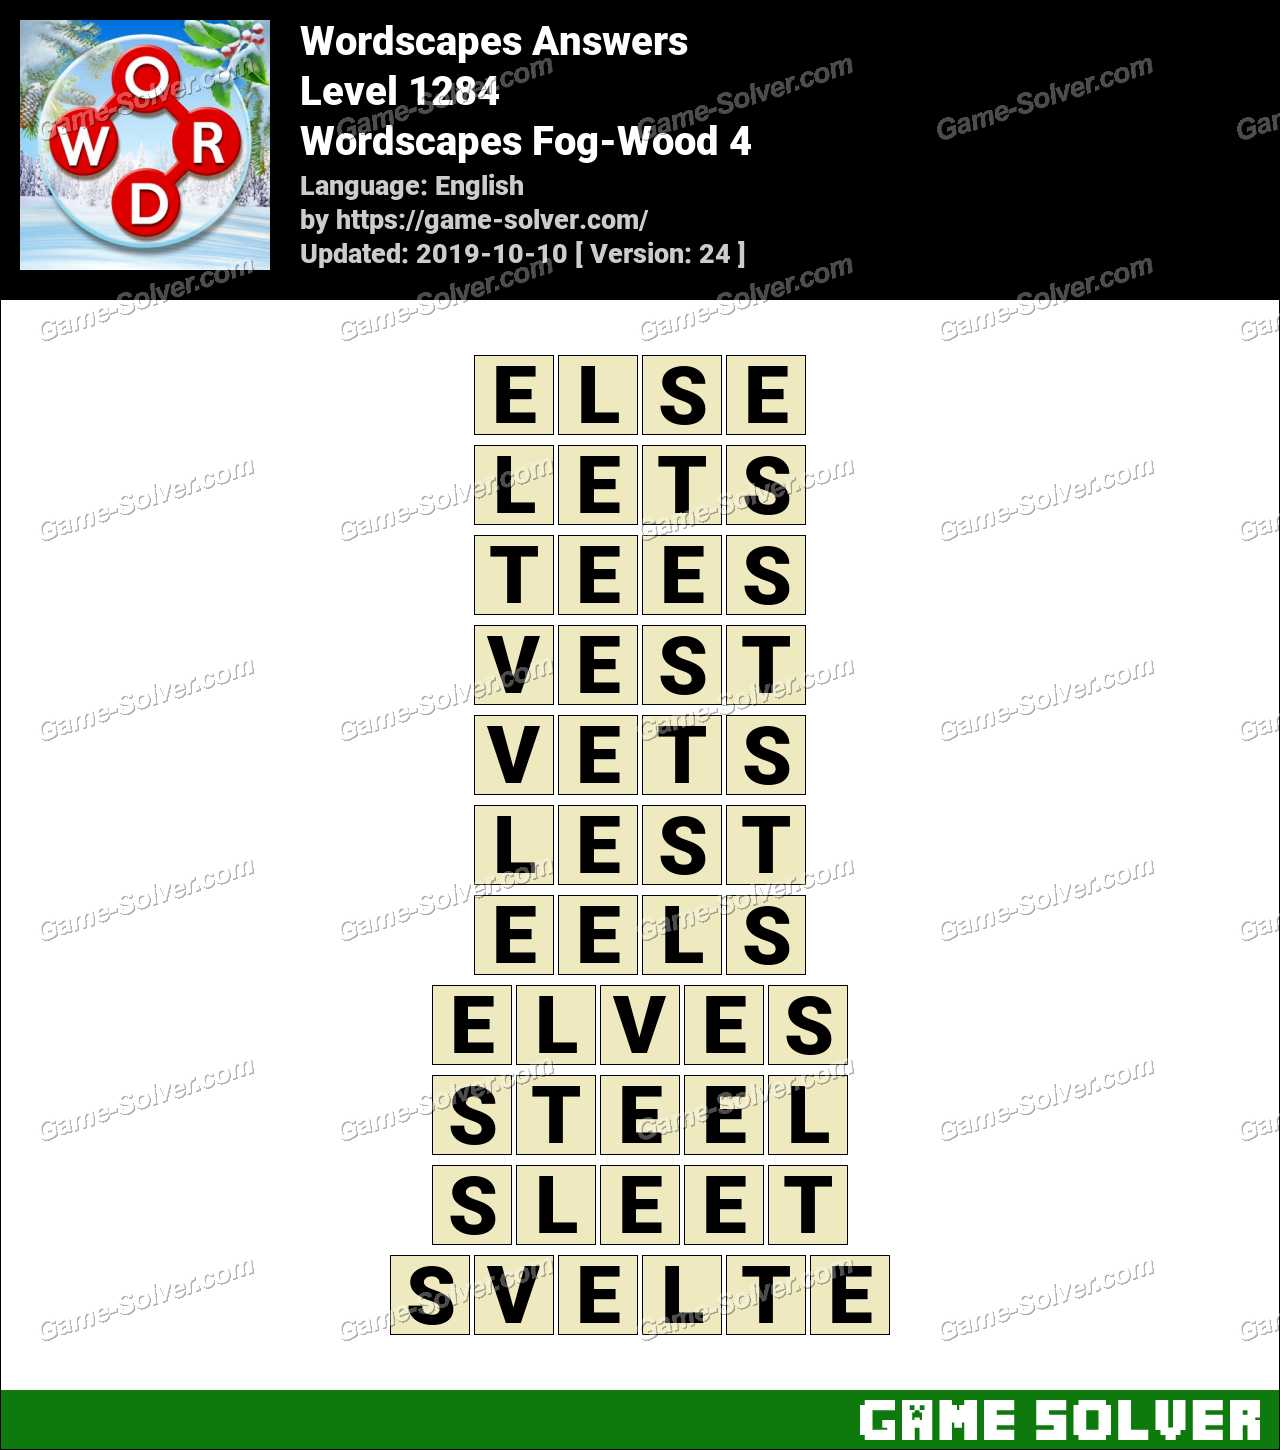 Wordscapes Fog-Wood 4 Answers